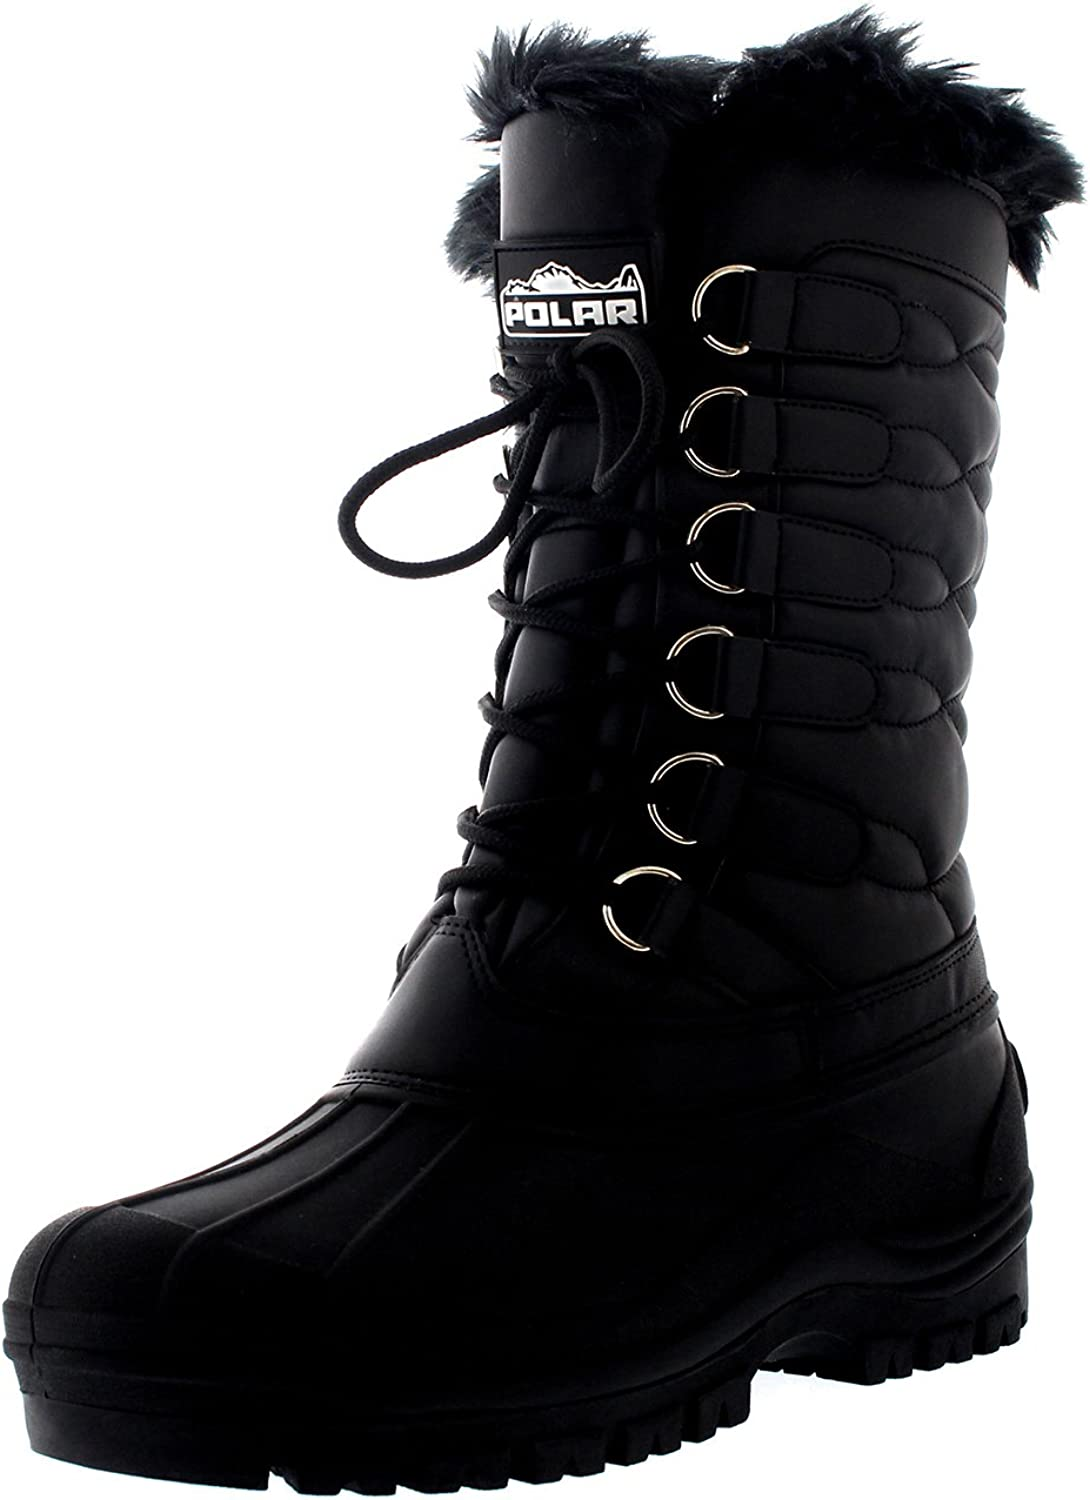 Polar Womens Mid Calf Thermal Rain Muck Waterproof Quilted Nylon Boot - Black - US11 EU42 - YC0332